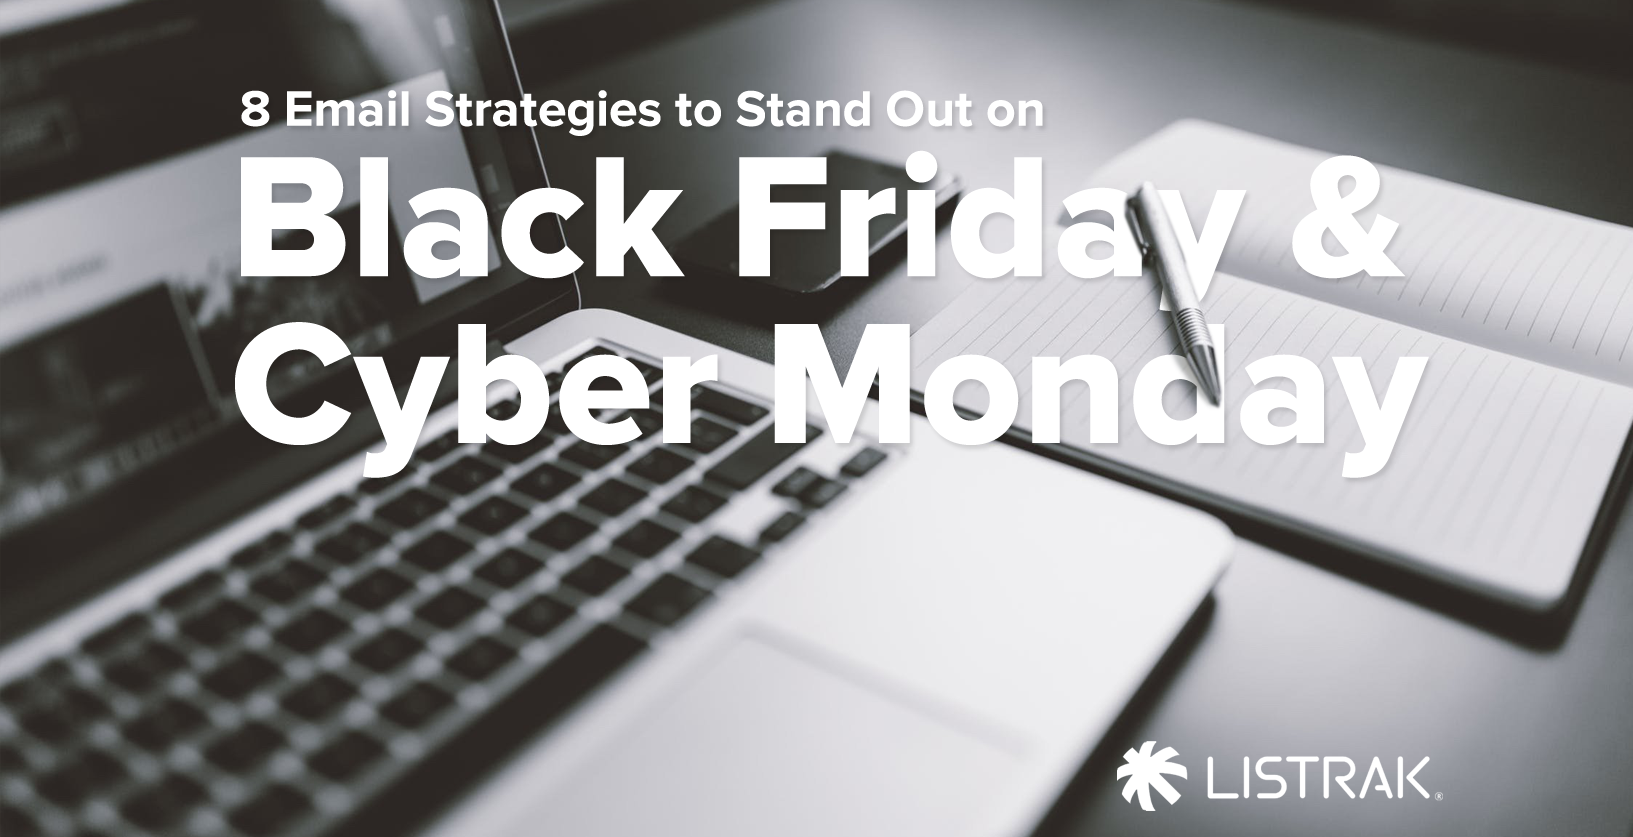 8 Email Strategies To Stand Out On Black Friday Cyber Monday